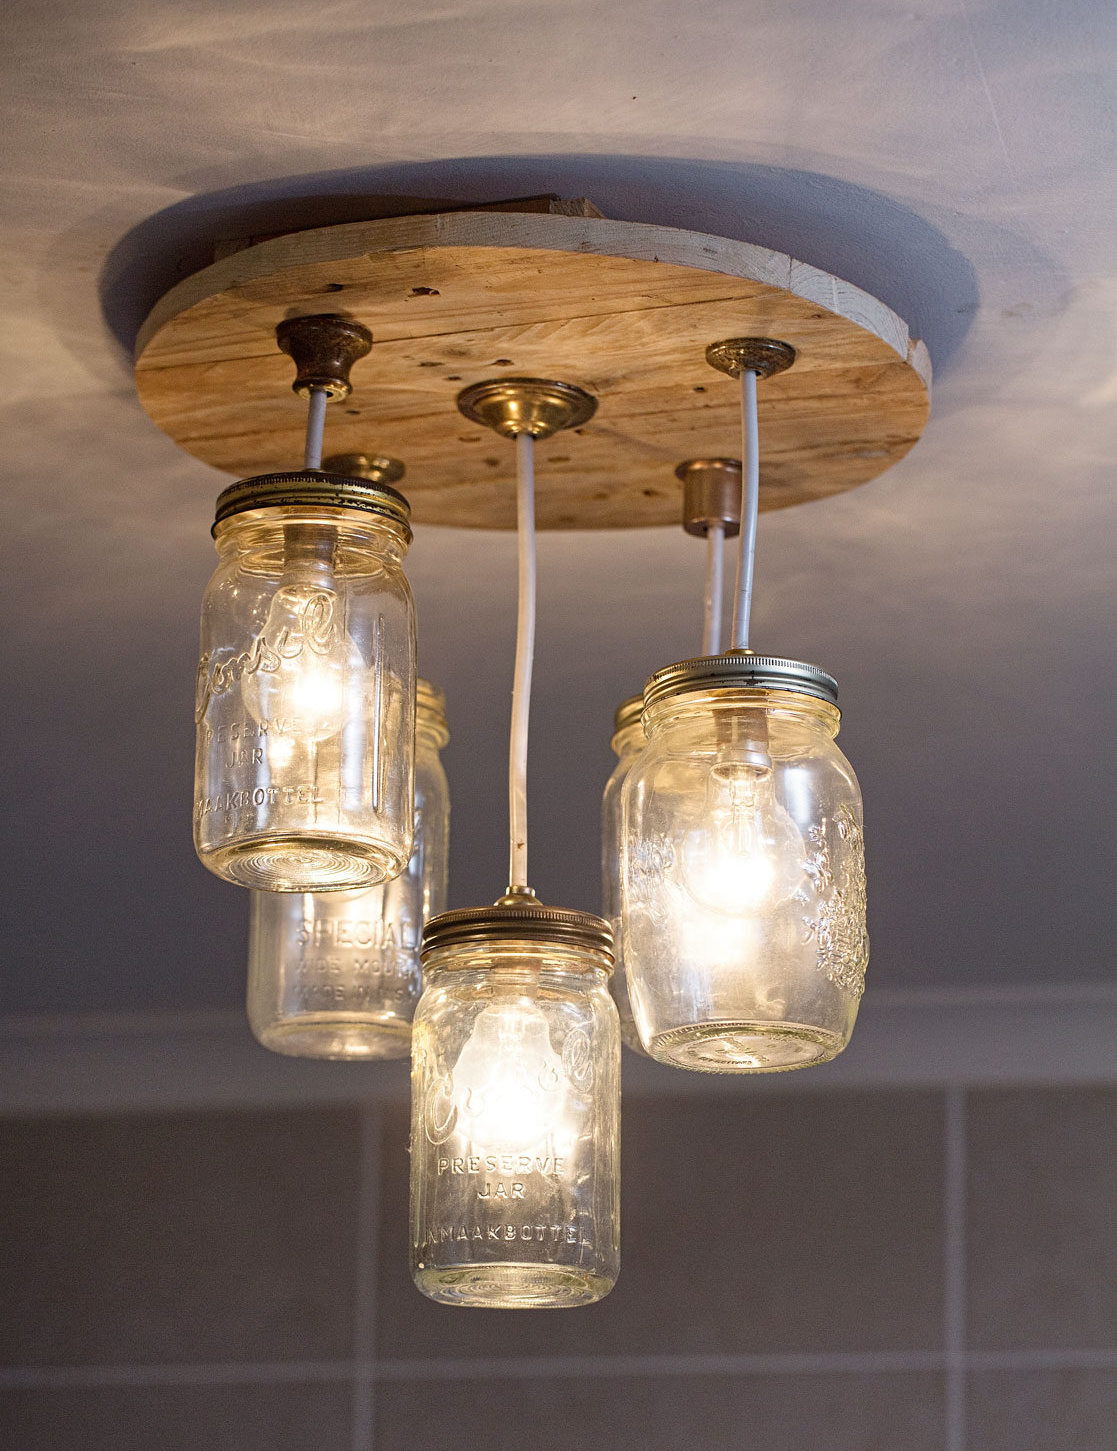 Diy mason jar chandelier sa garden and home diy mason jar chandelier arubaitofo Image collections